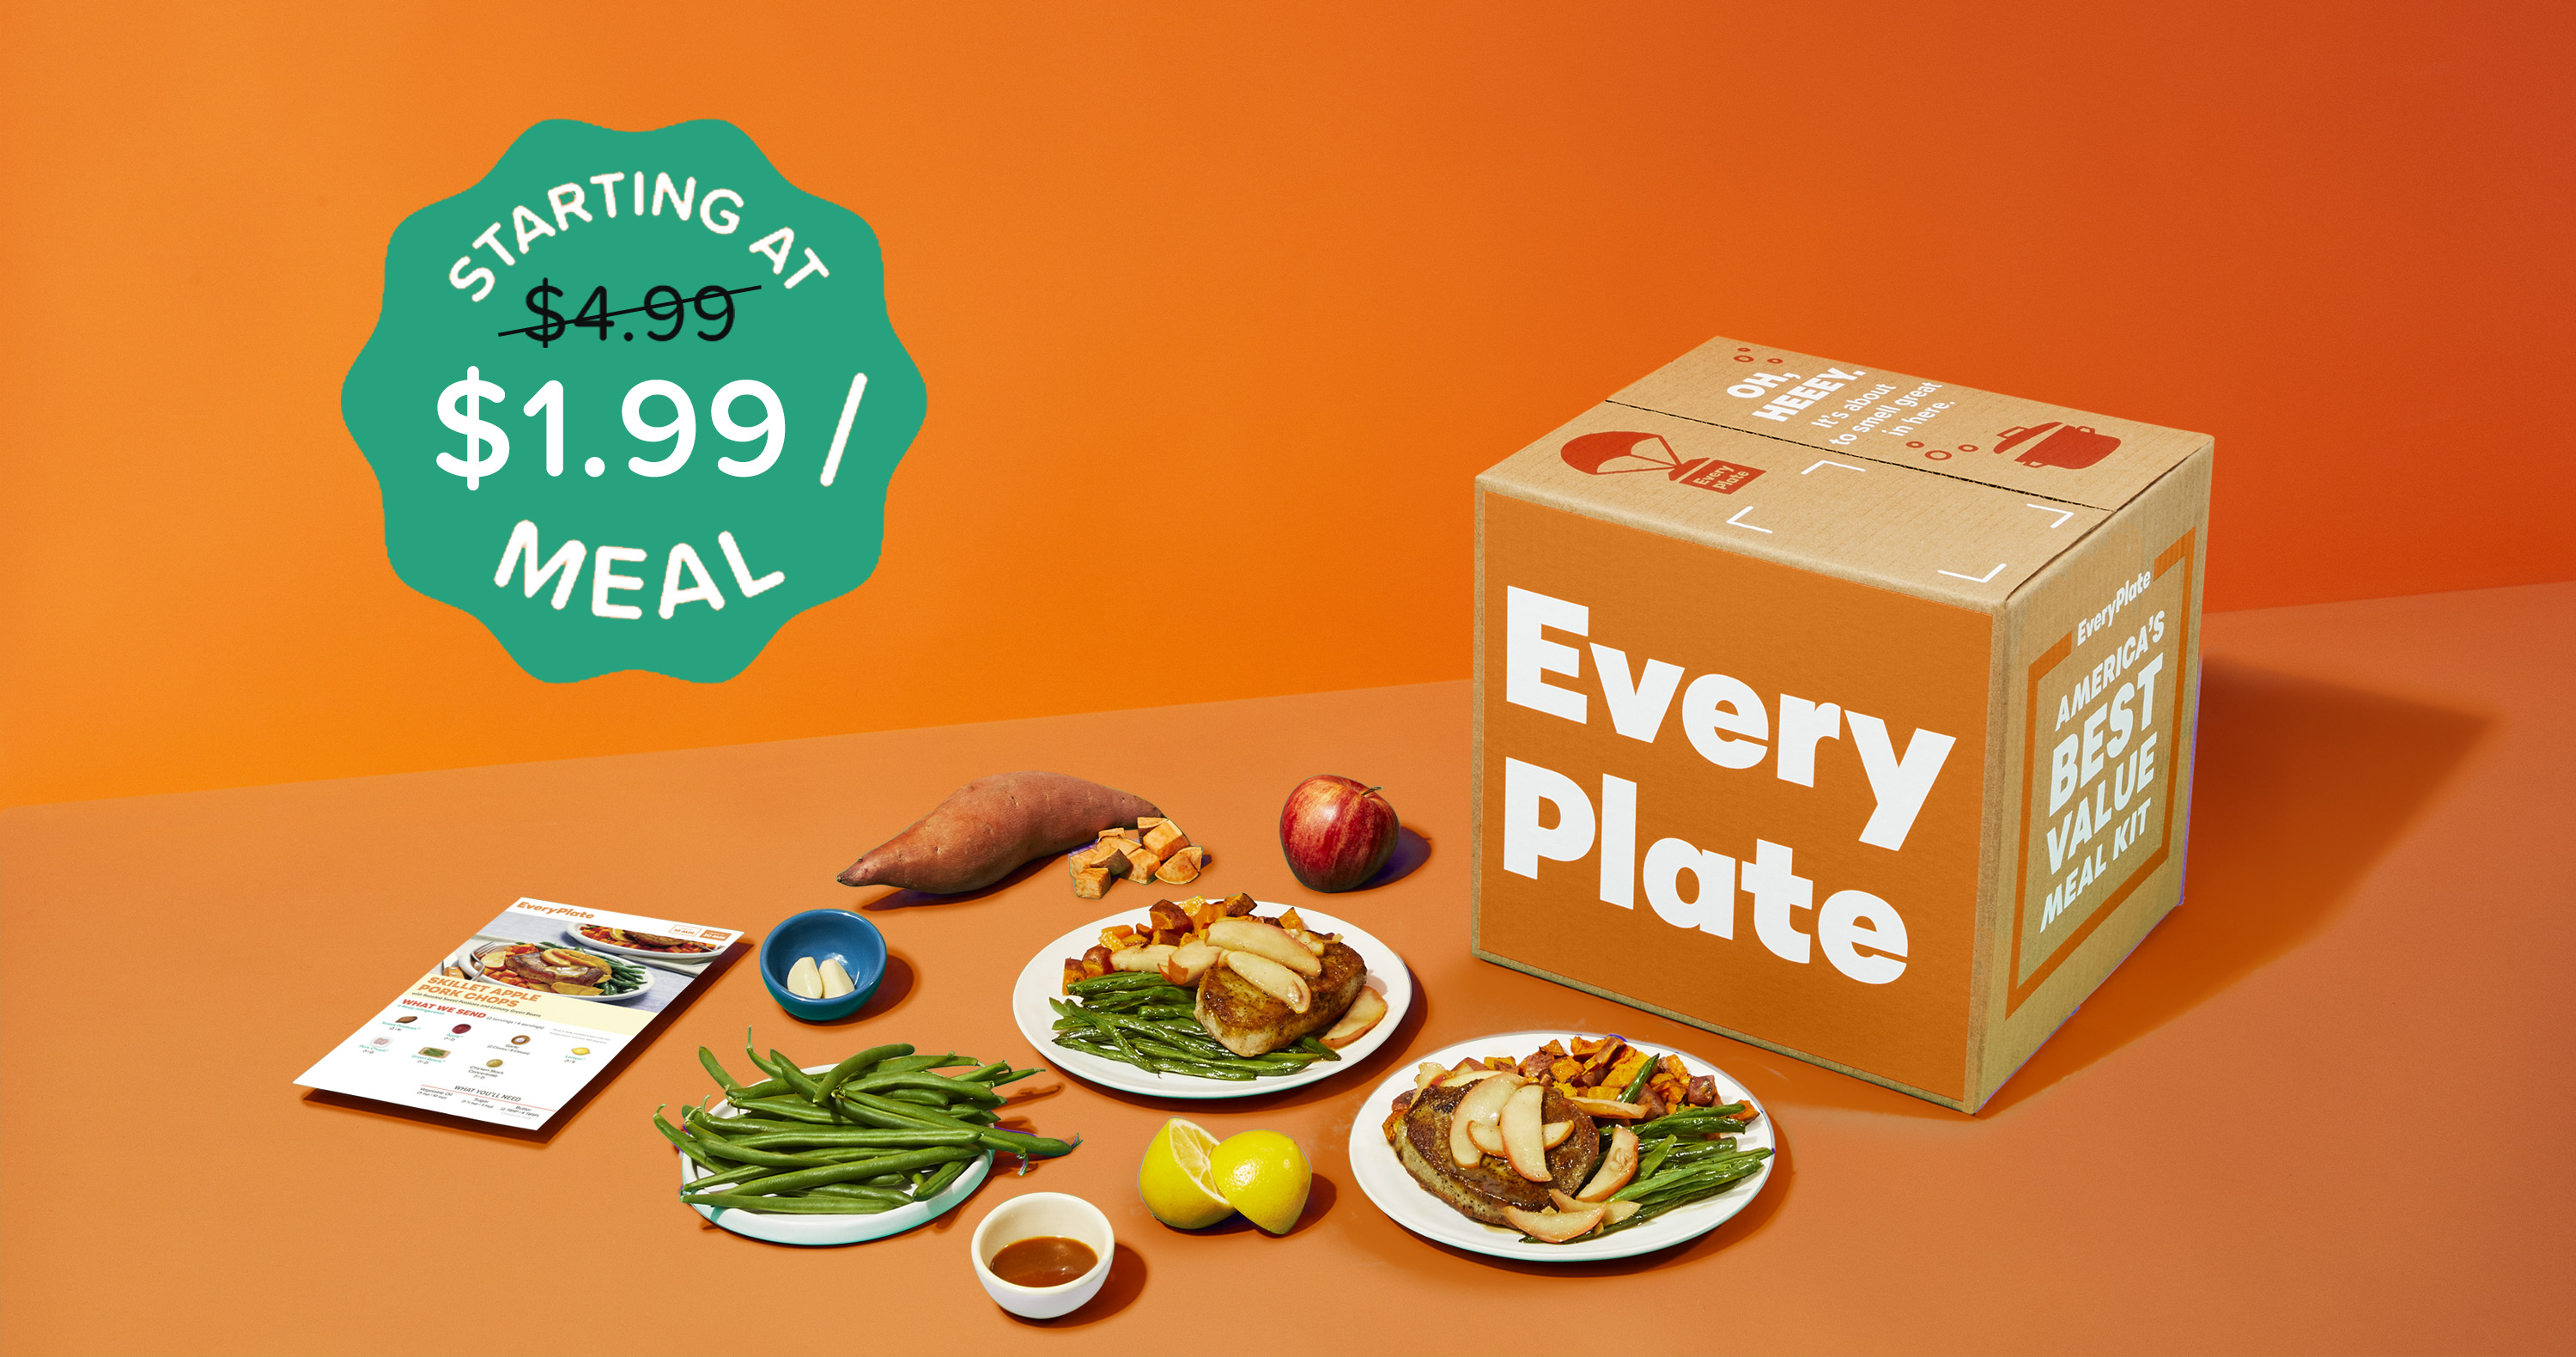 EveryPlate Meal Subscription Box